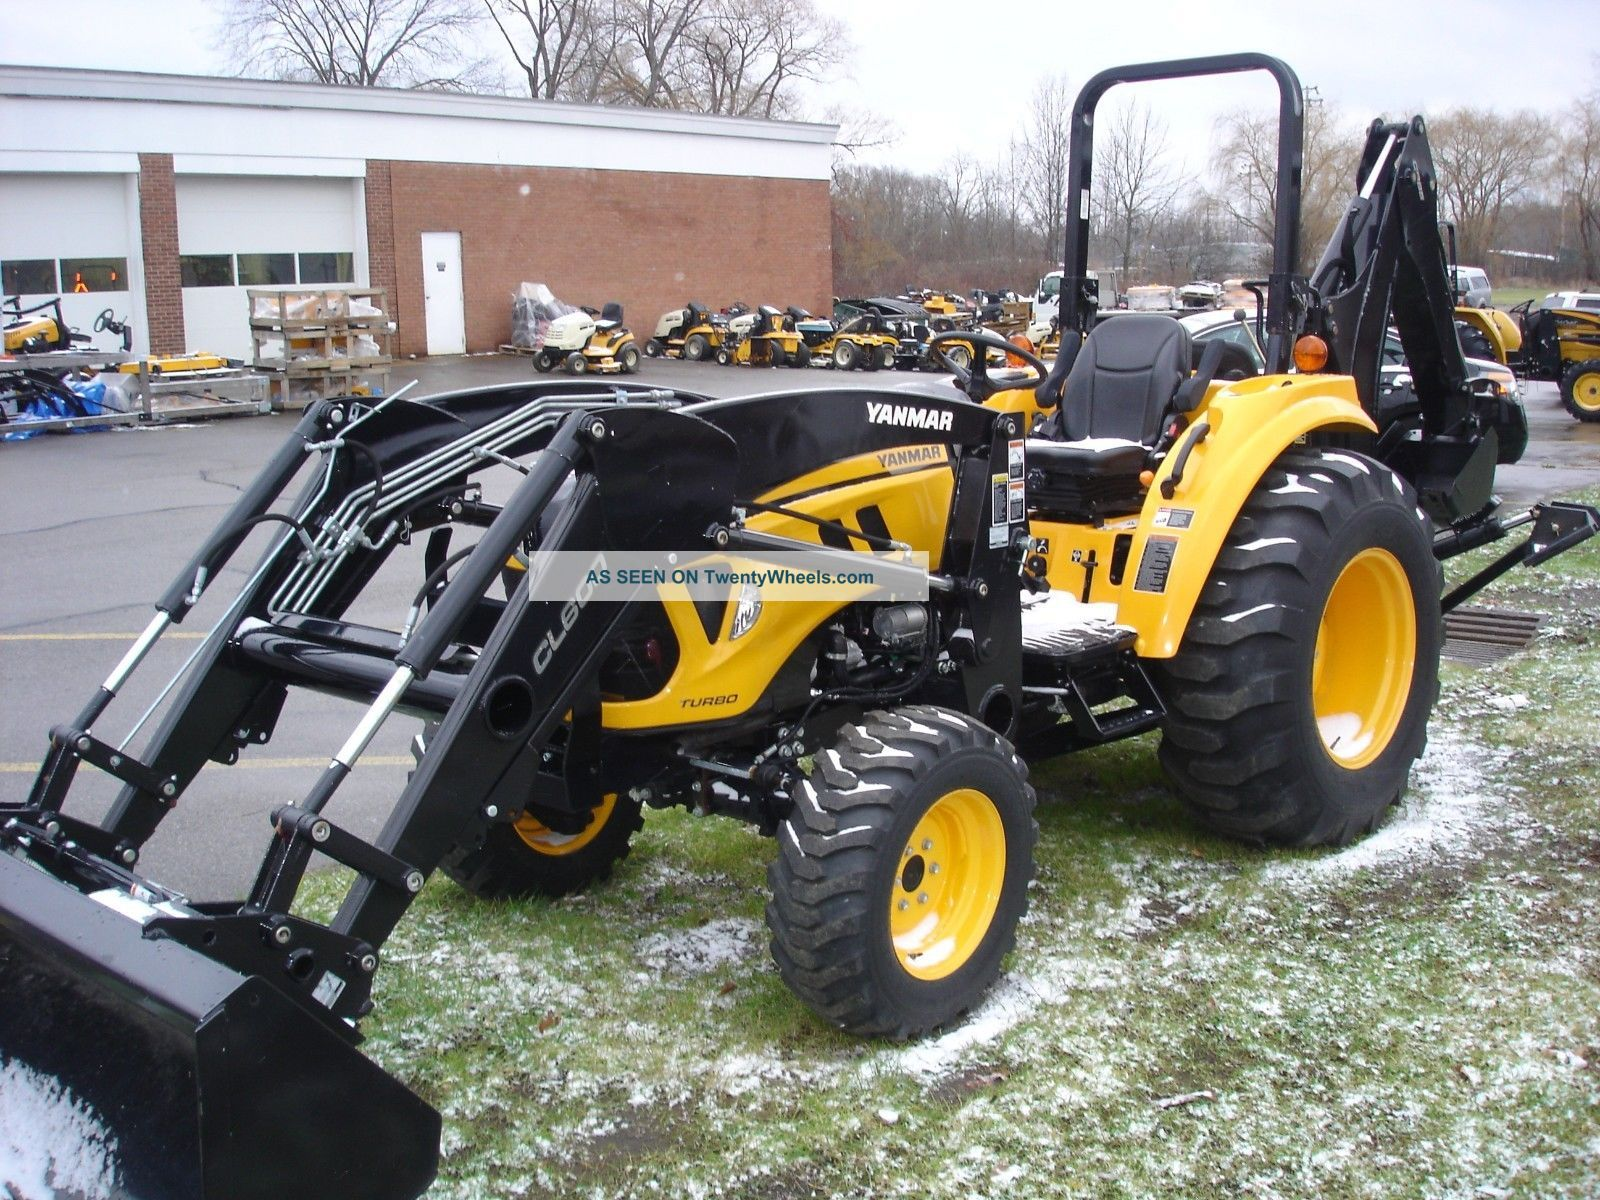 ... Yanmar Lx4900 Turbo Diesel Compact Tractor With Loader And Backhoe 4x4